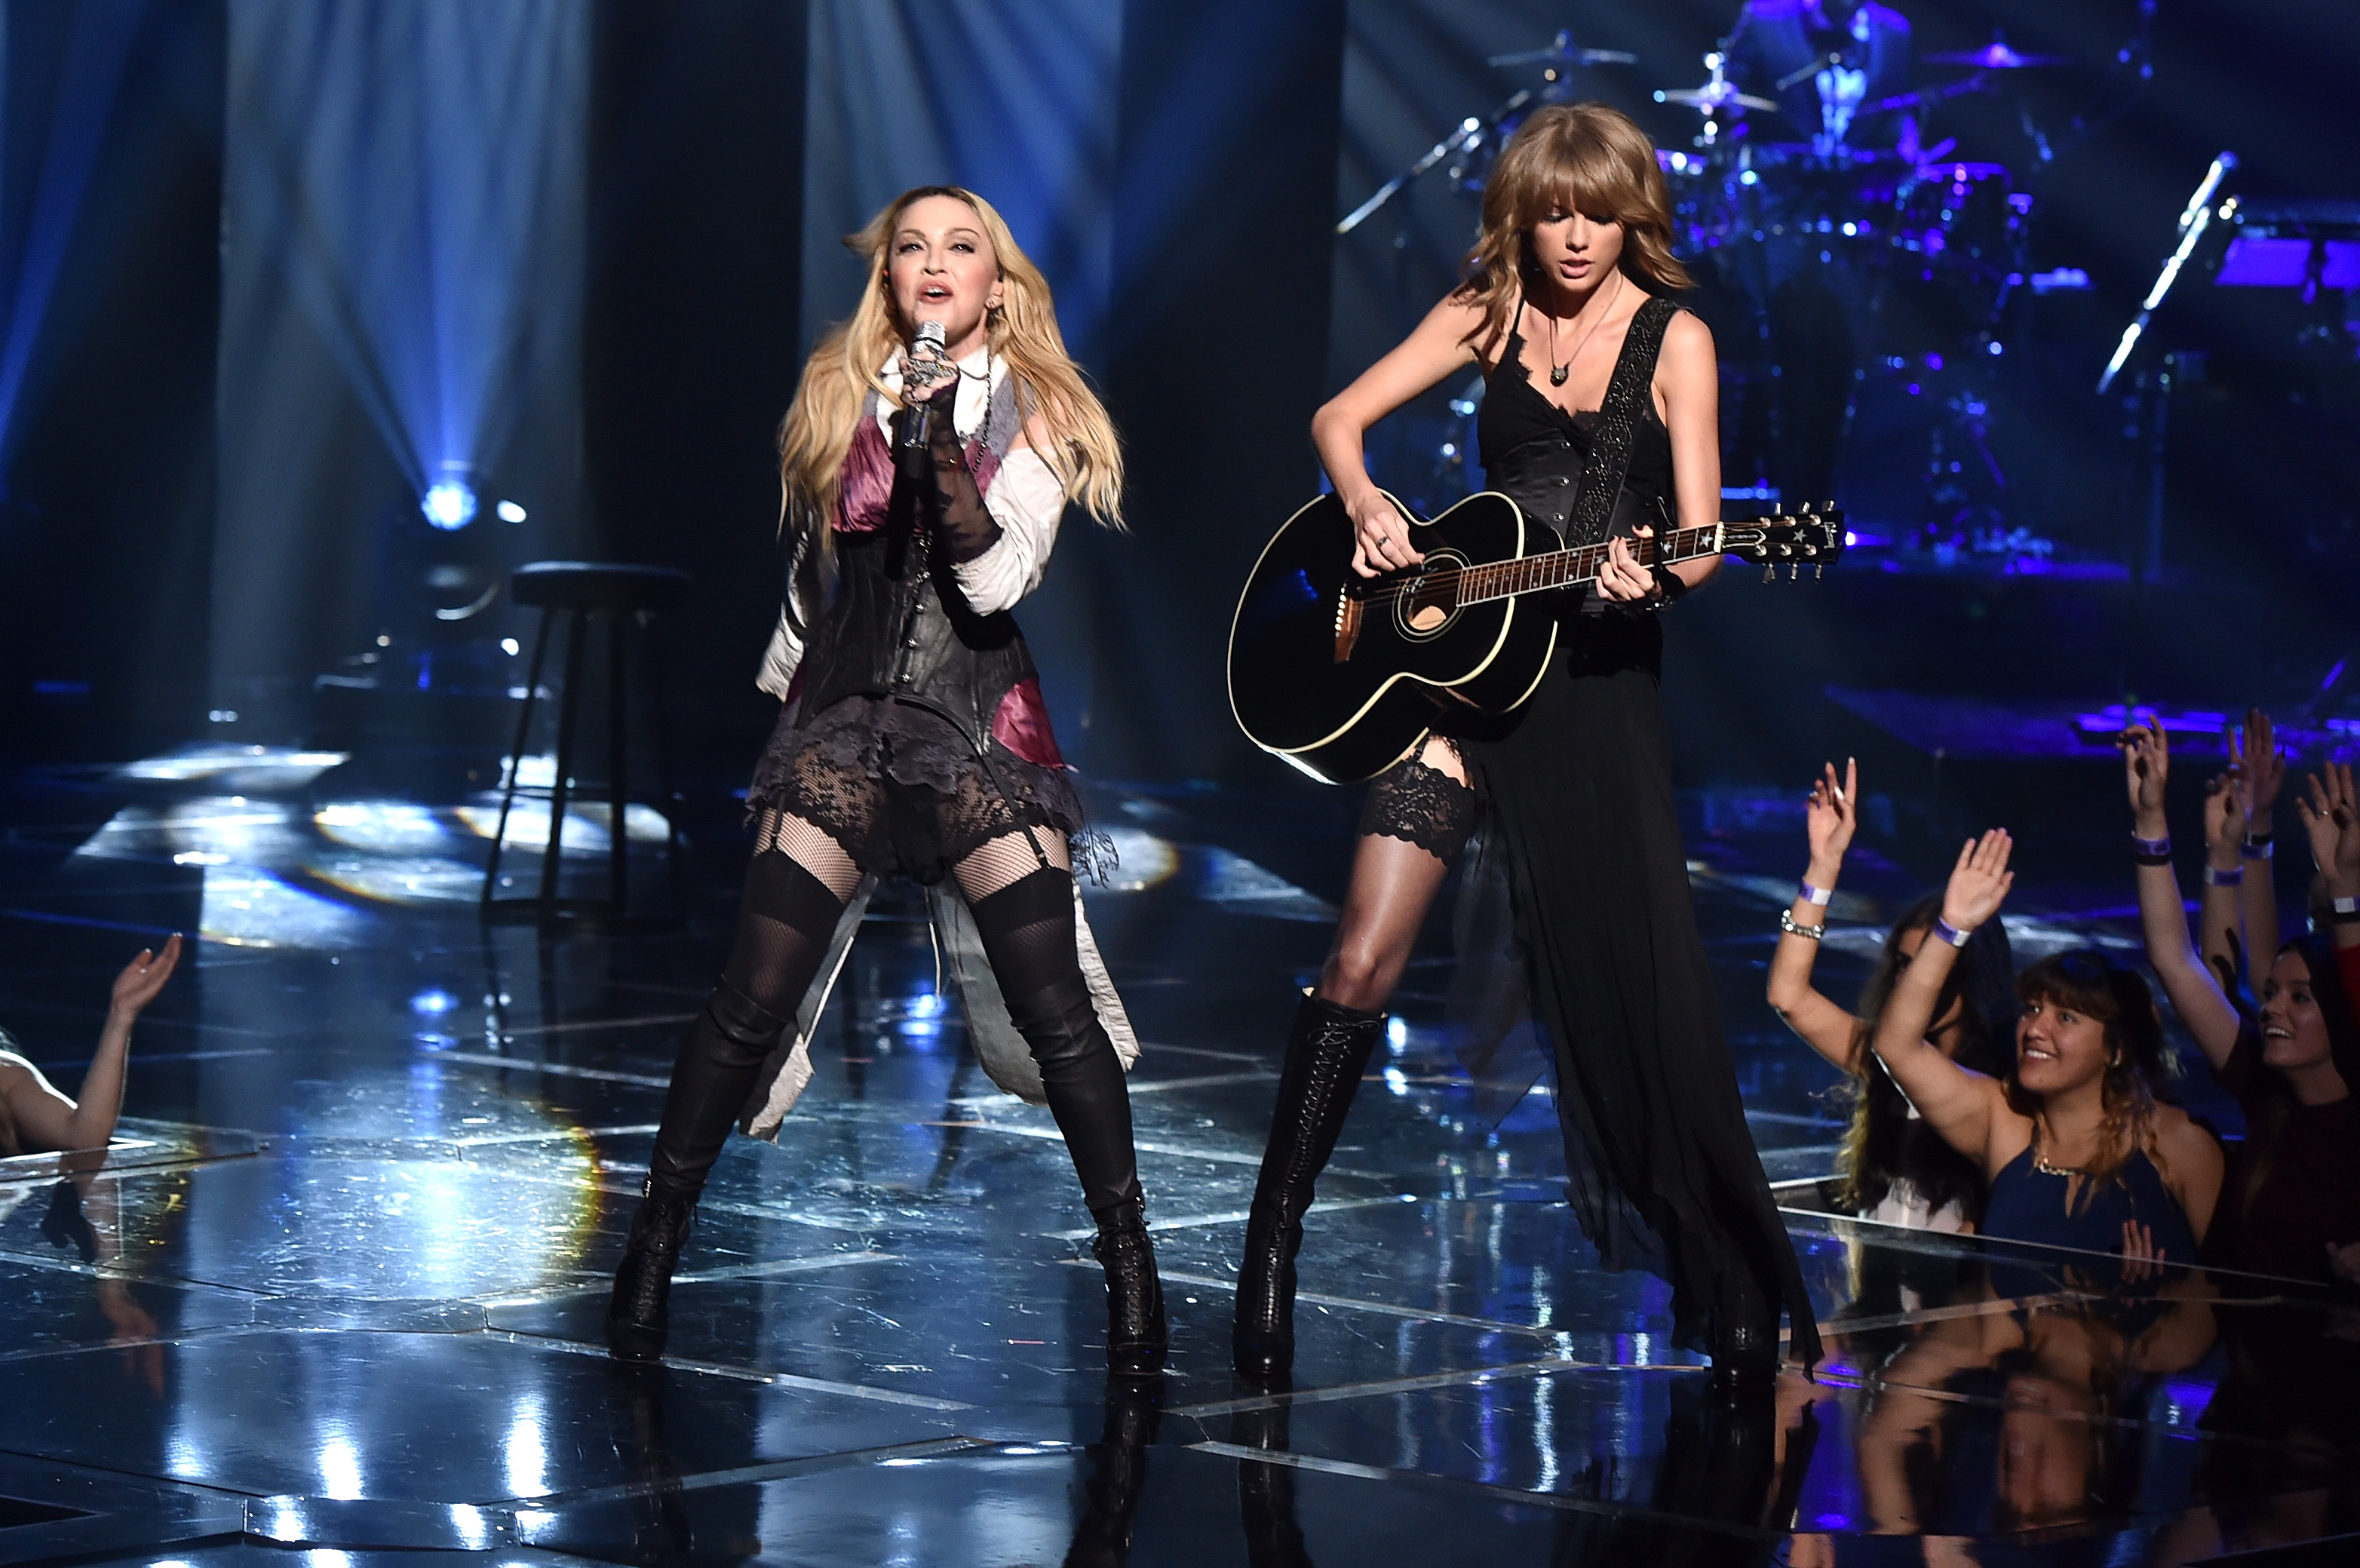 Taylor Swift shares her fangirl moment with Madonna as she loves her 'outstanding show'; See Pic